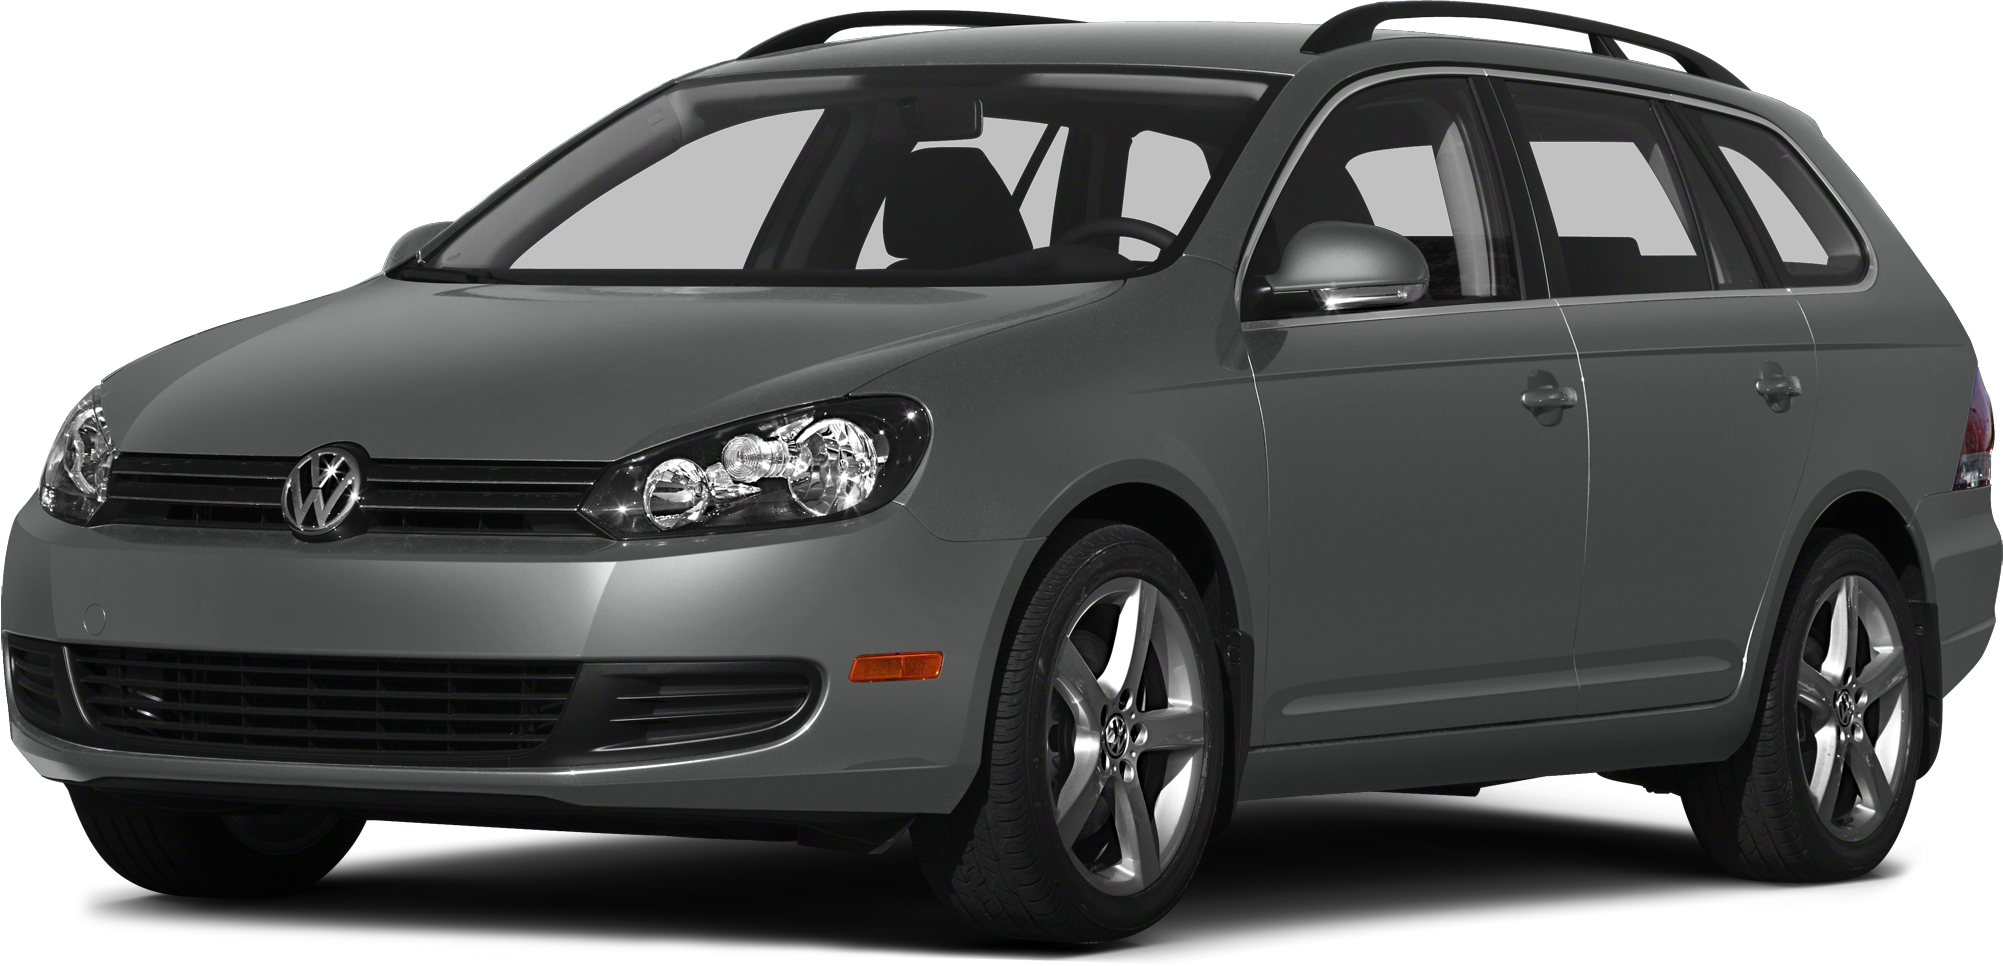 2014 volkswagen jetta sportwagen vw quality review 2017 2018 best cars reviews. Black Bedroom Furniture Sets. Home Design Ideas